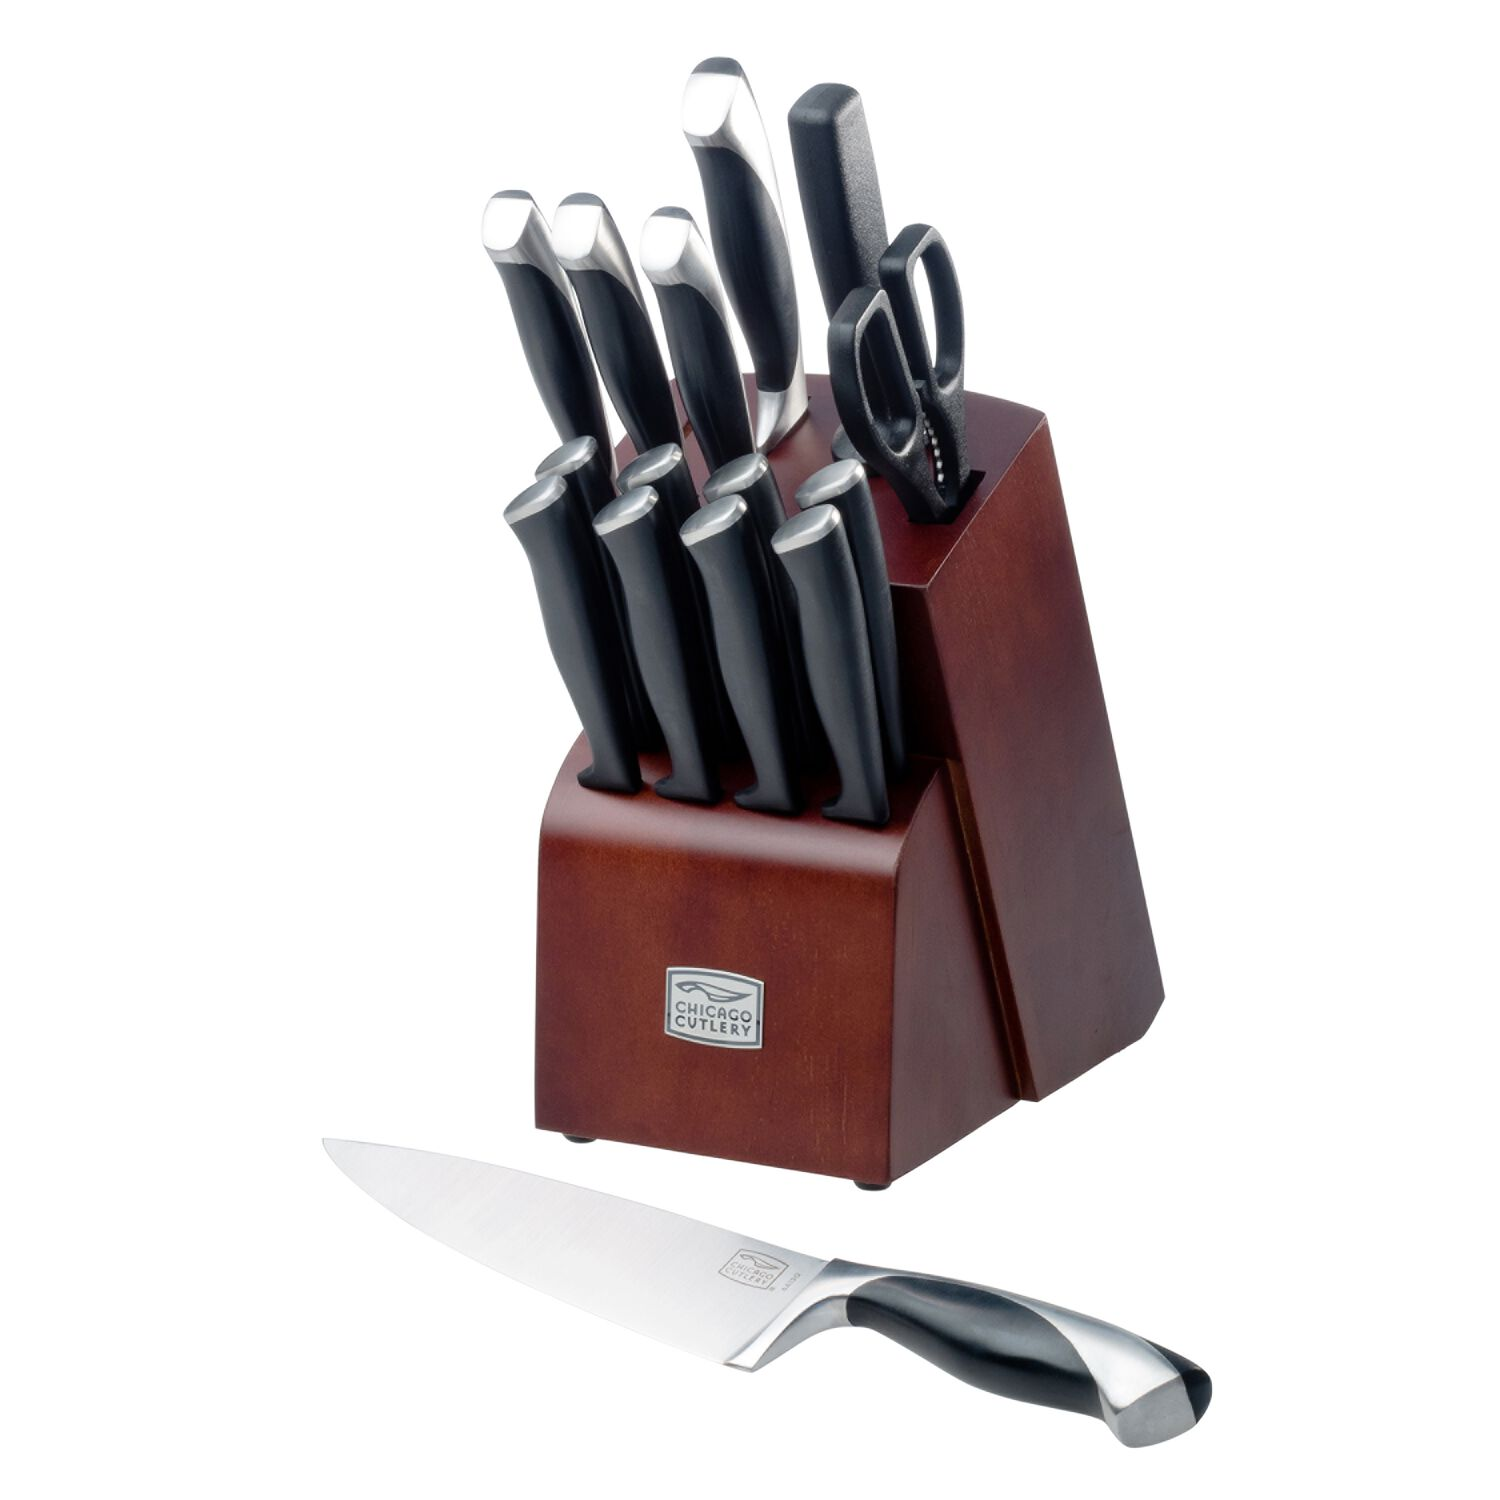 Chicago Cutlery® Fullerton™ 16-Pc Block Set